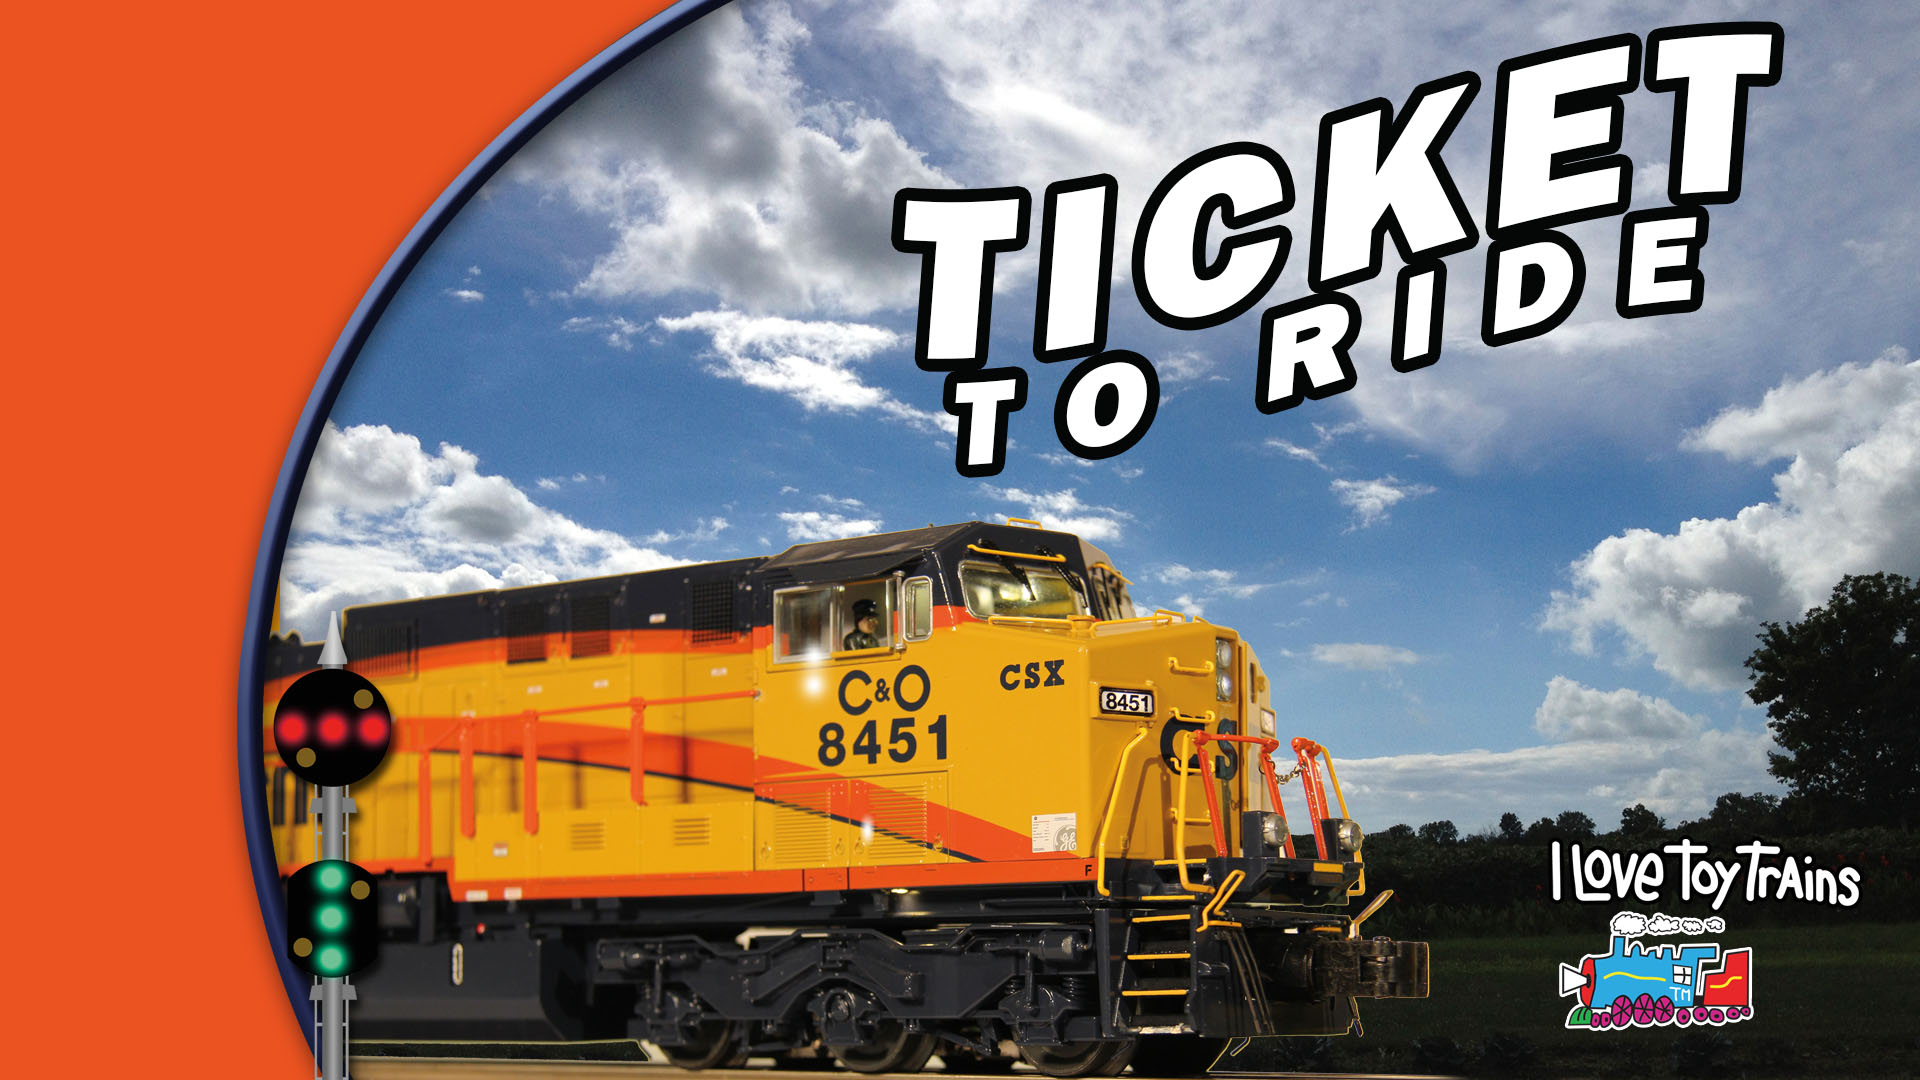 I Love Toy Trains - Ticket to Ride